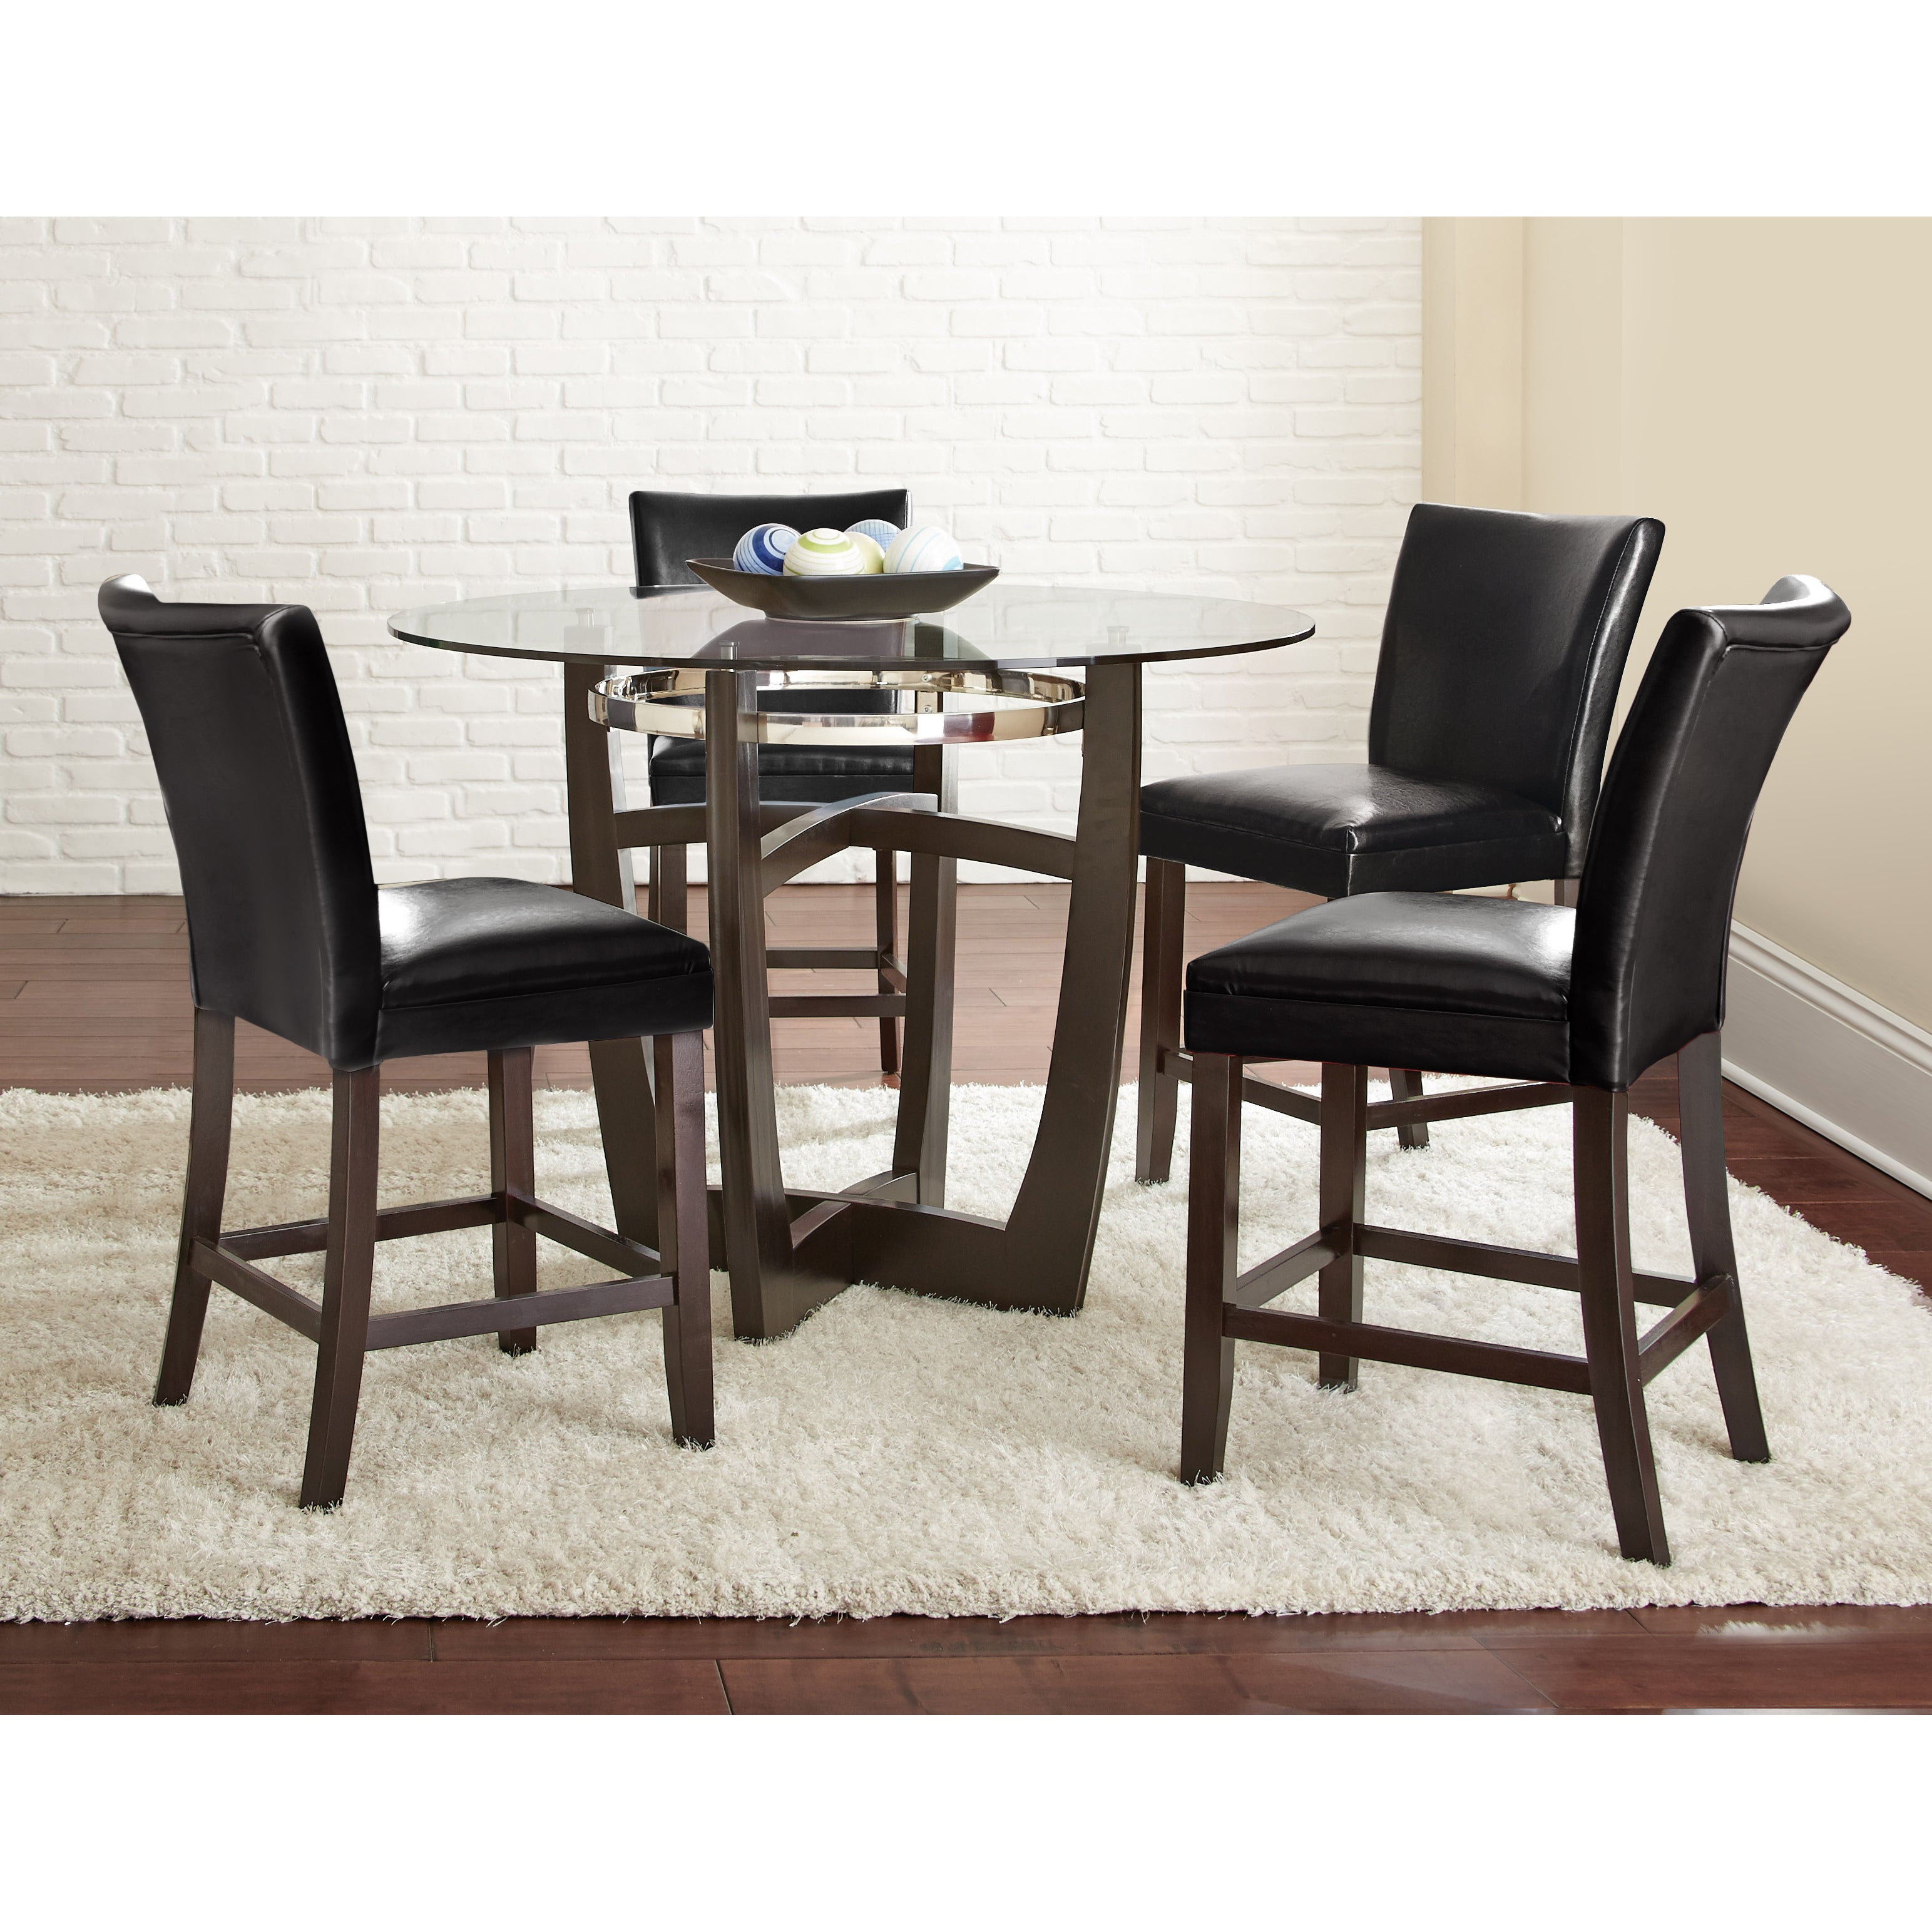 5pc Dining Set: Greyson Living Monoco Counter Height 5PC Dining Set